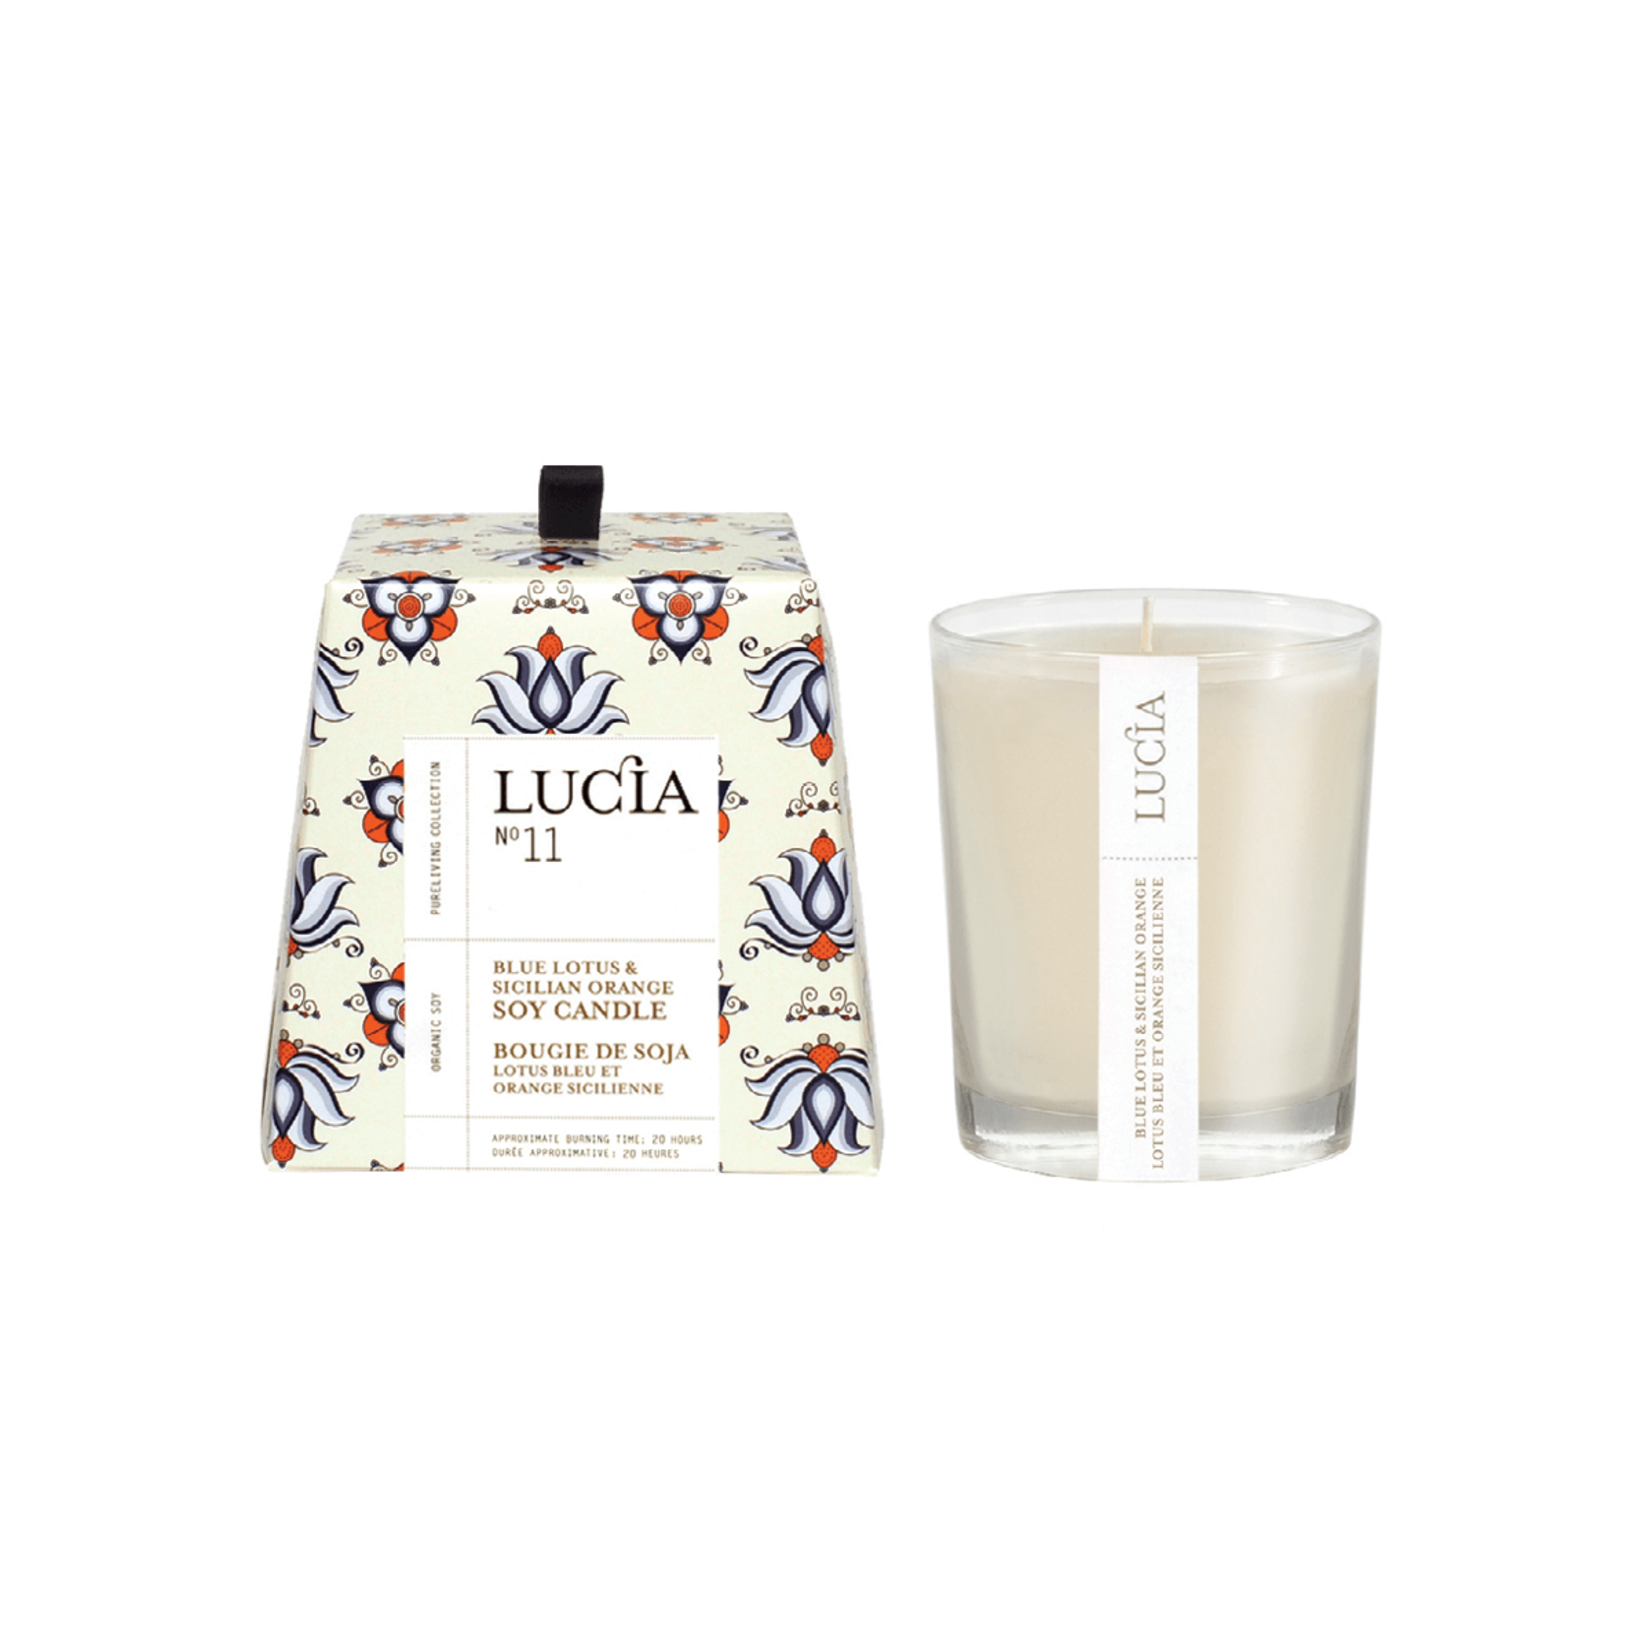 Lucia LUCIA no 11 - Bougie 50 H